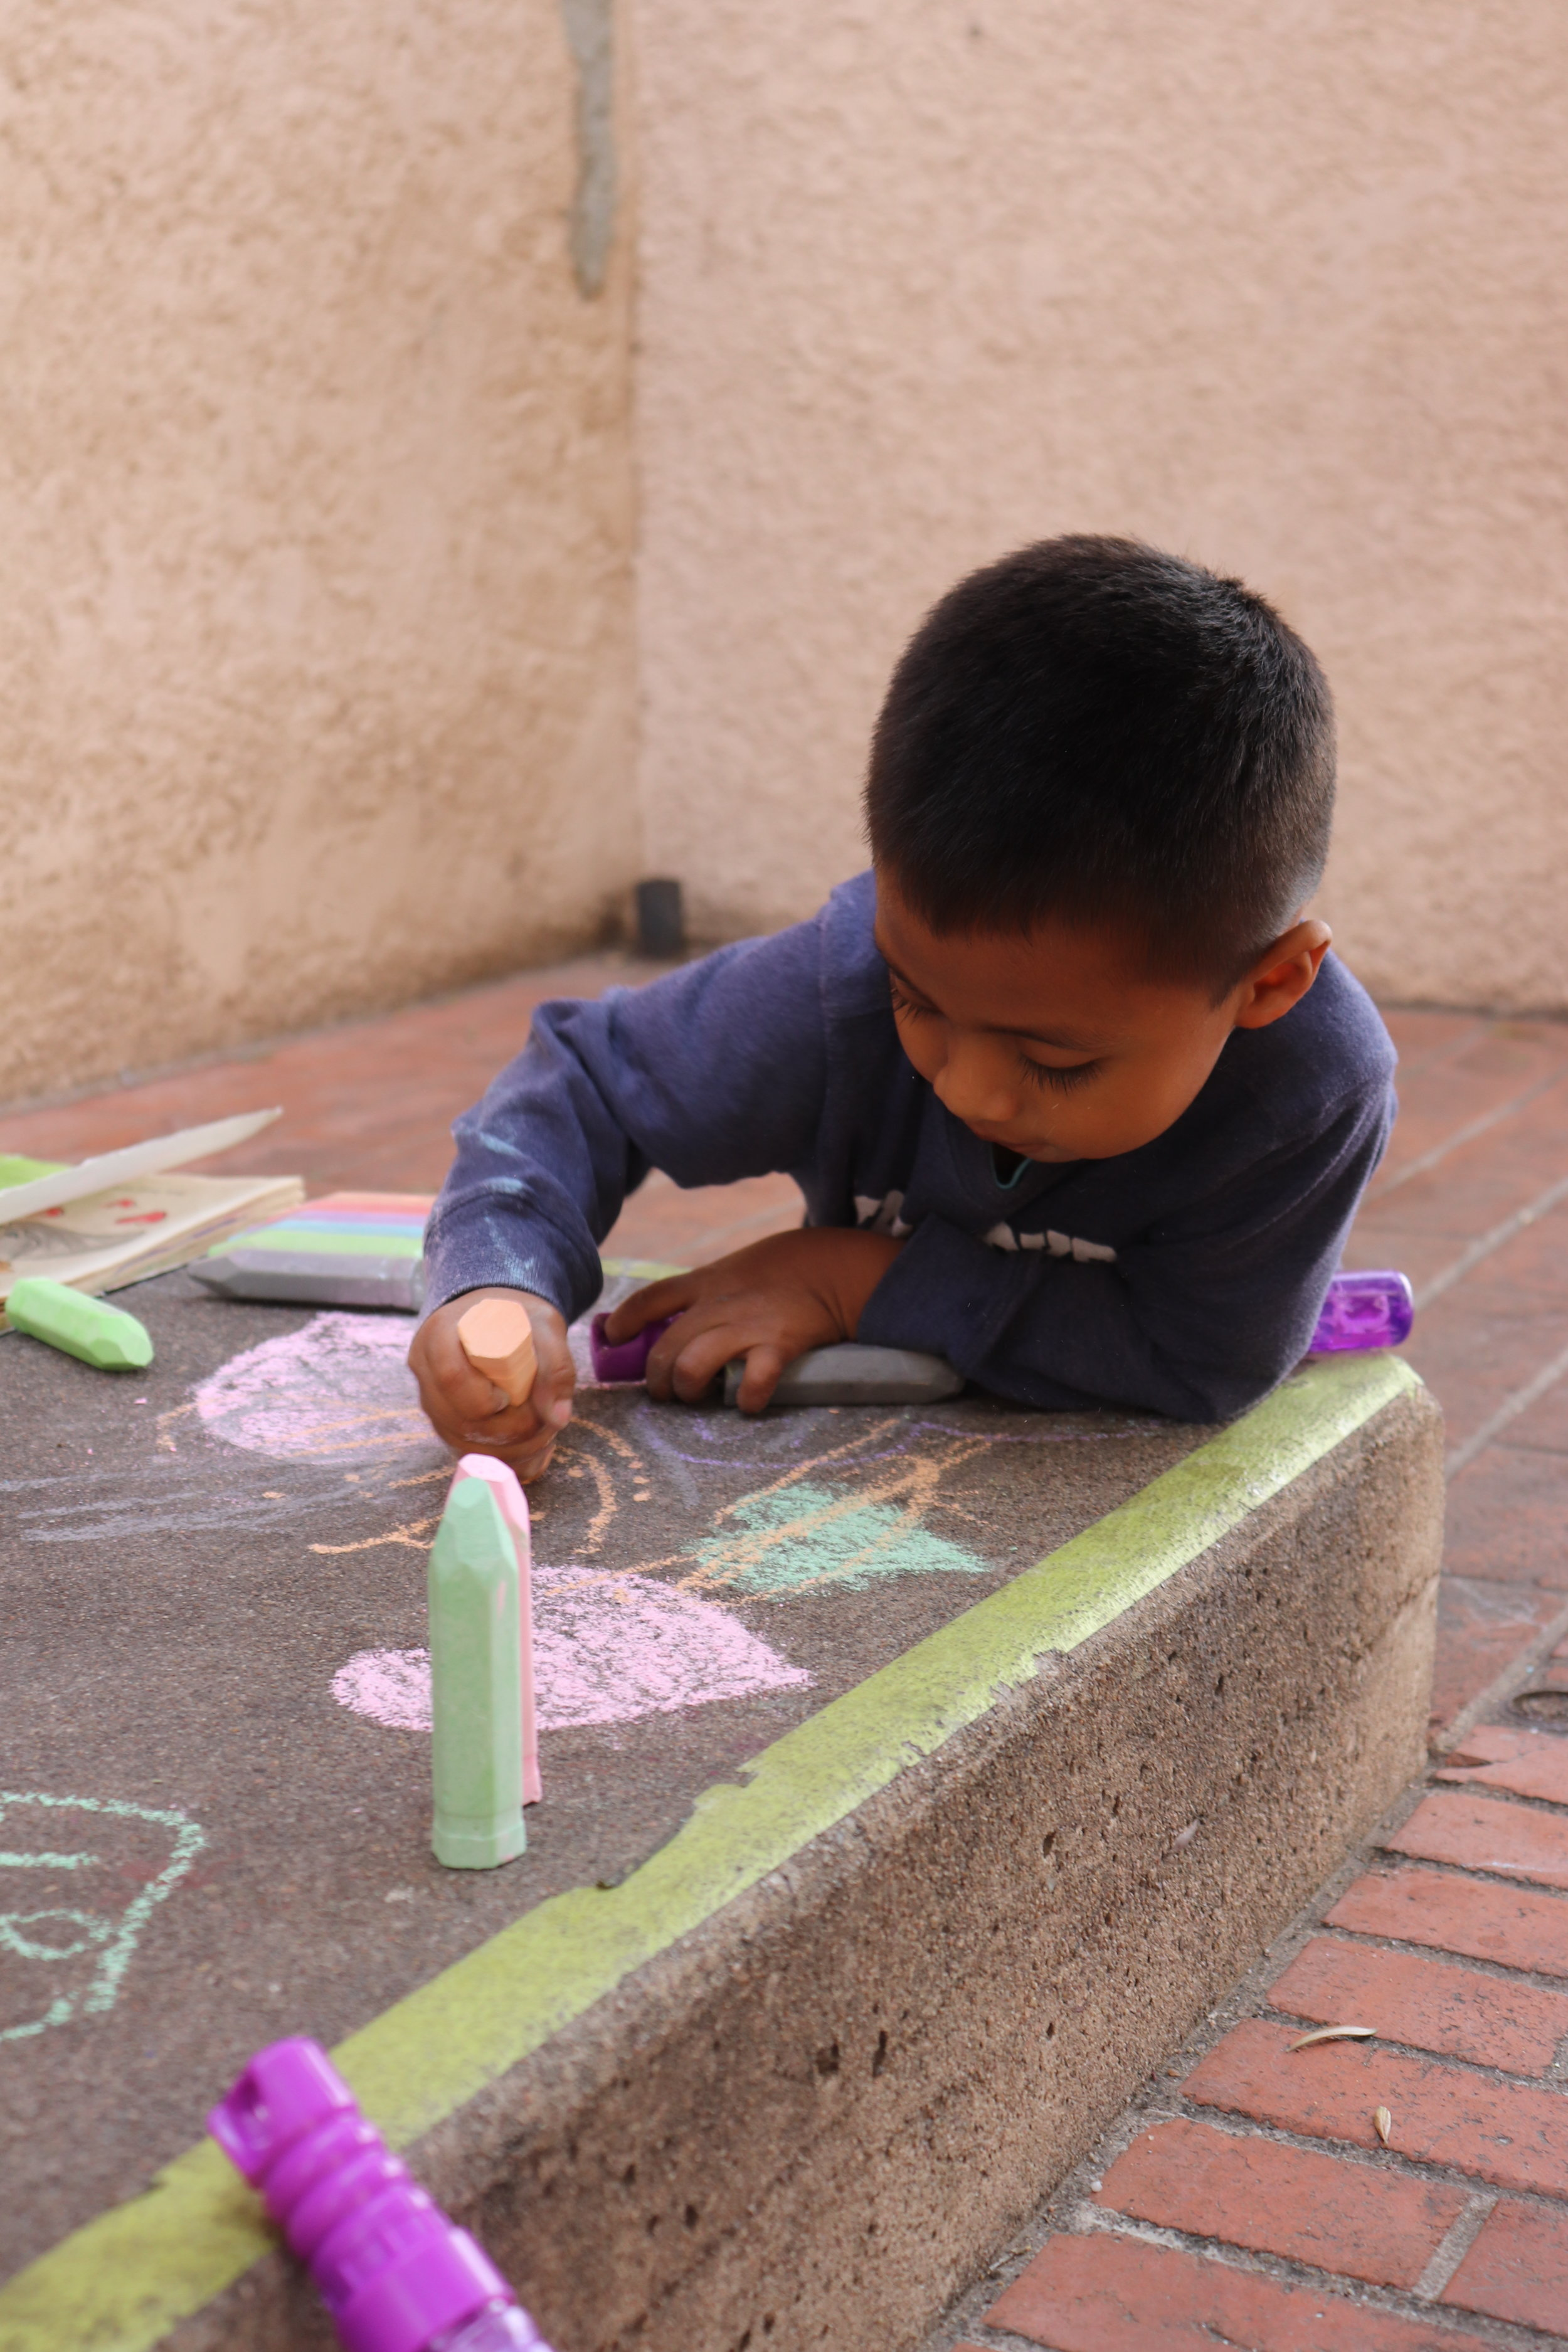 A young boy plays with the donated chalk on the steps of The Inn Project. His mother watched carefully from down the stairs where the shelter is located.